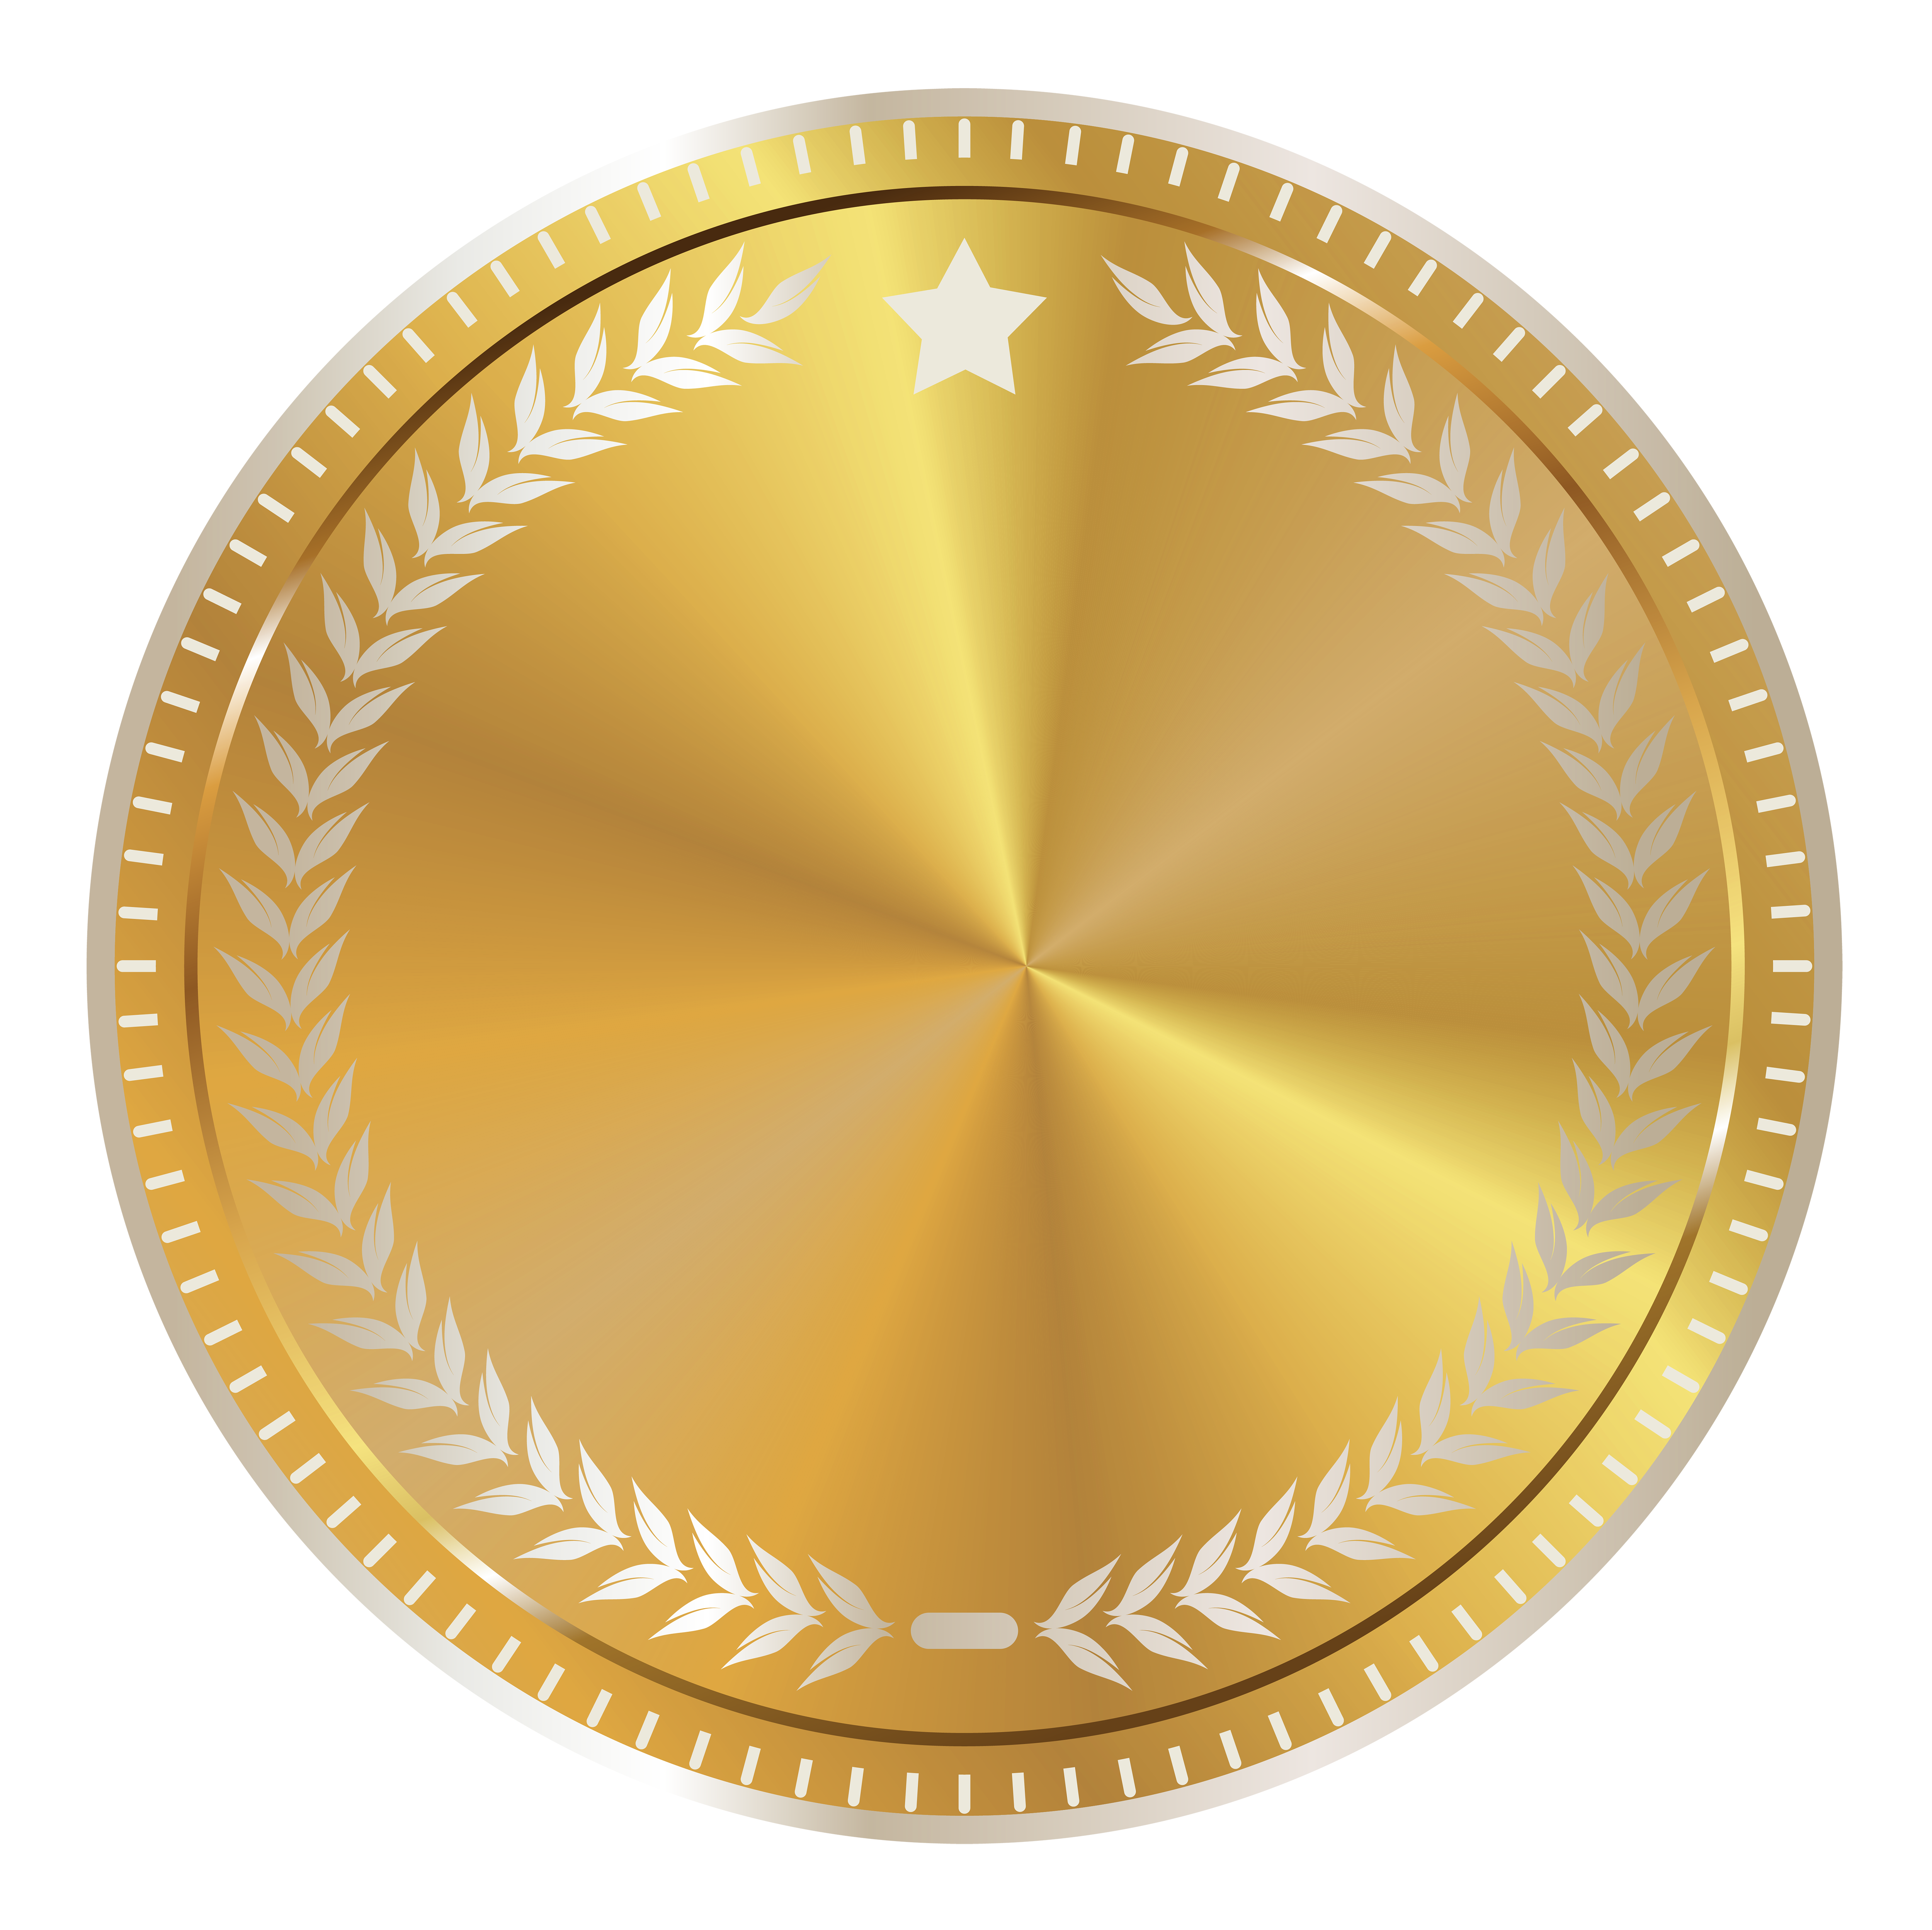 Free Gold Seal Cliparts, Download Free Clip Art, Free Clip Art on ... svg free stock